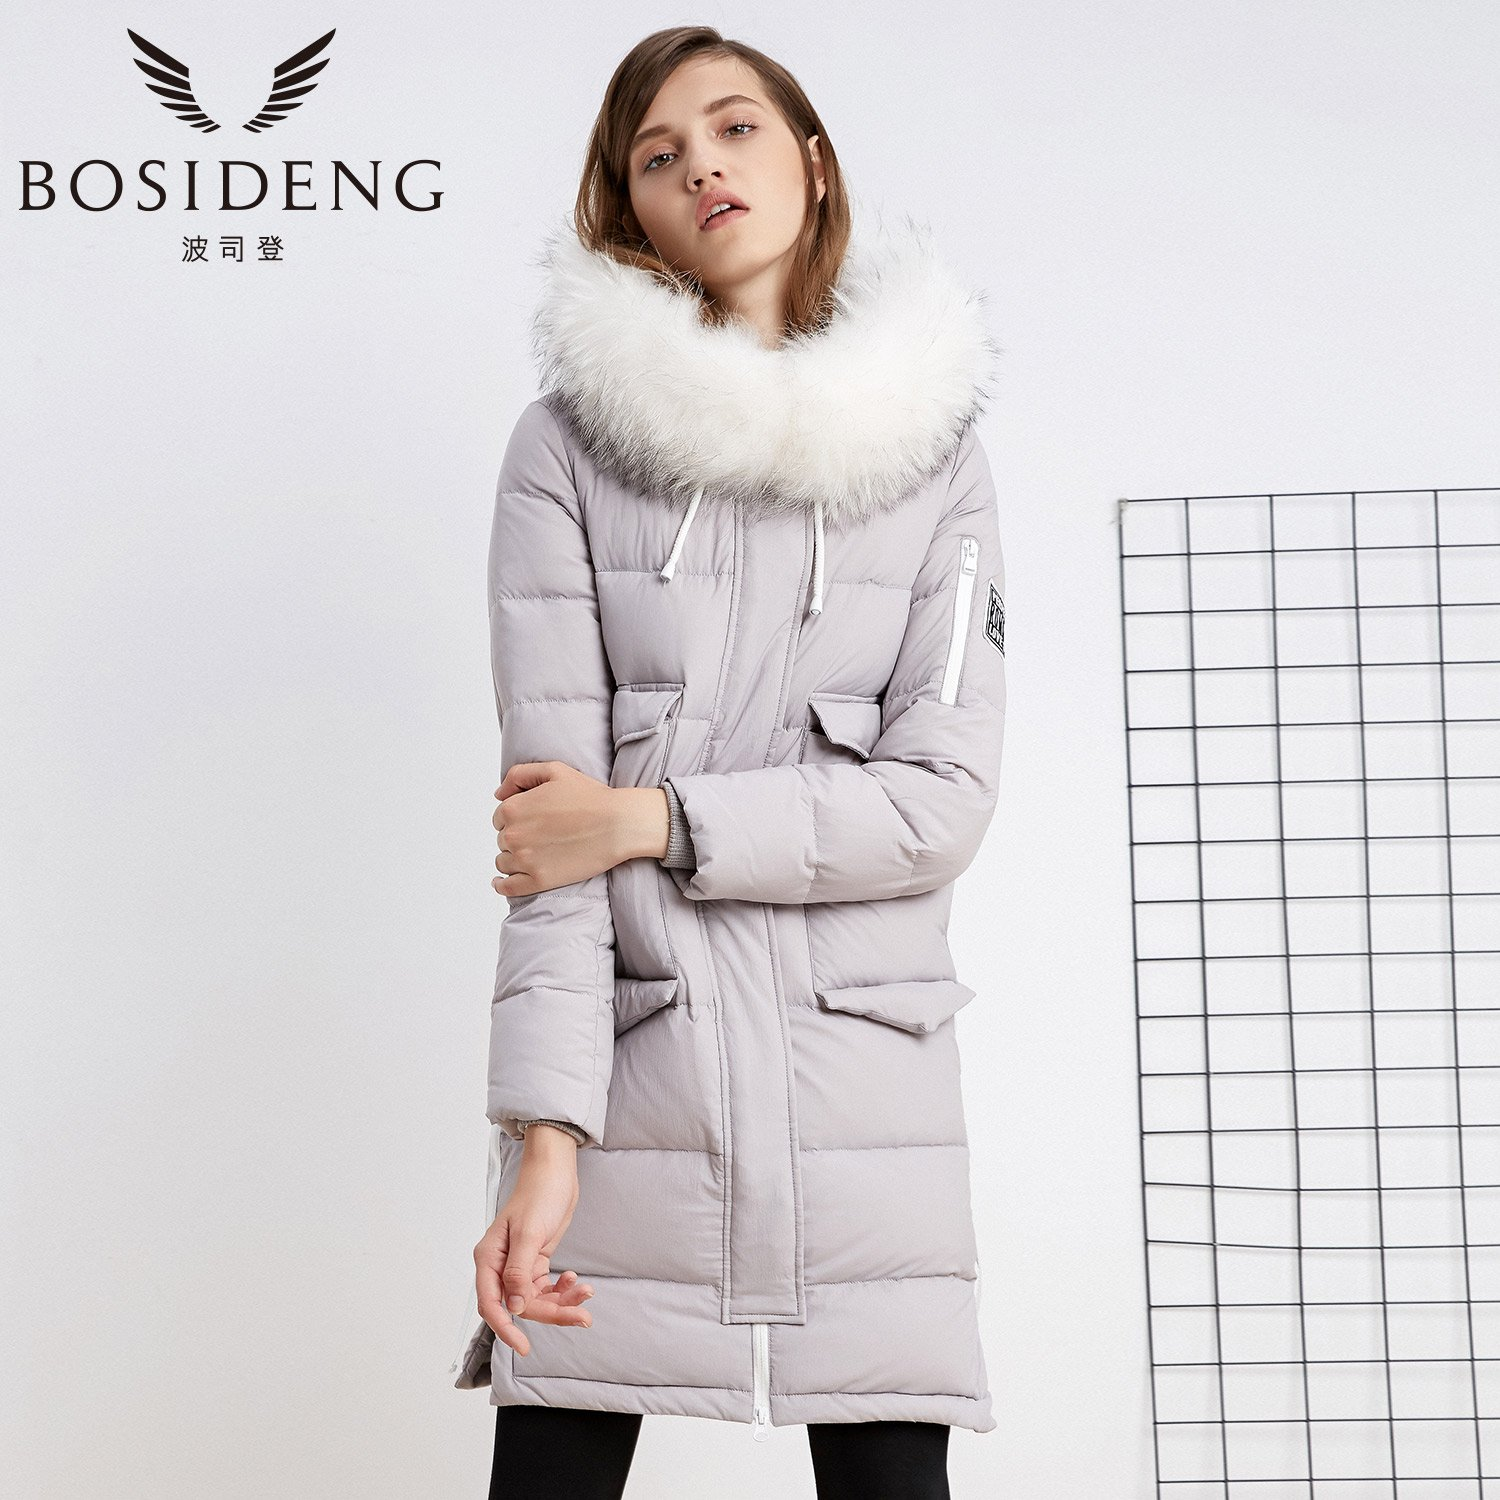 2fd907fec Amazon.com: BOSIDENG Women's Winter Down Jacket Real Fur Hooded ...